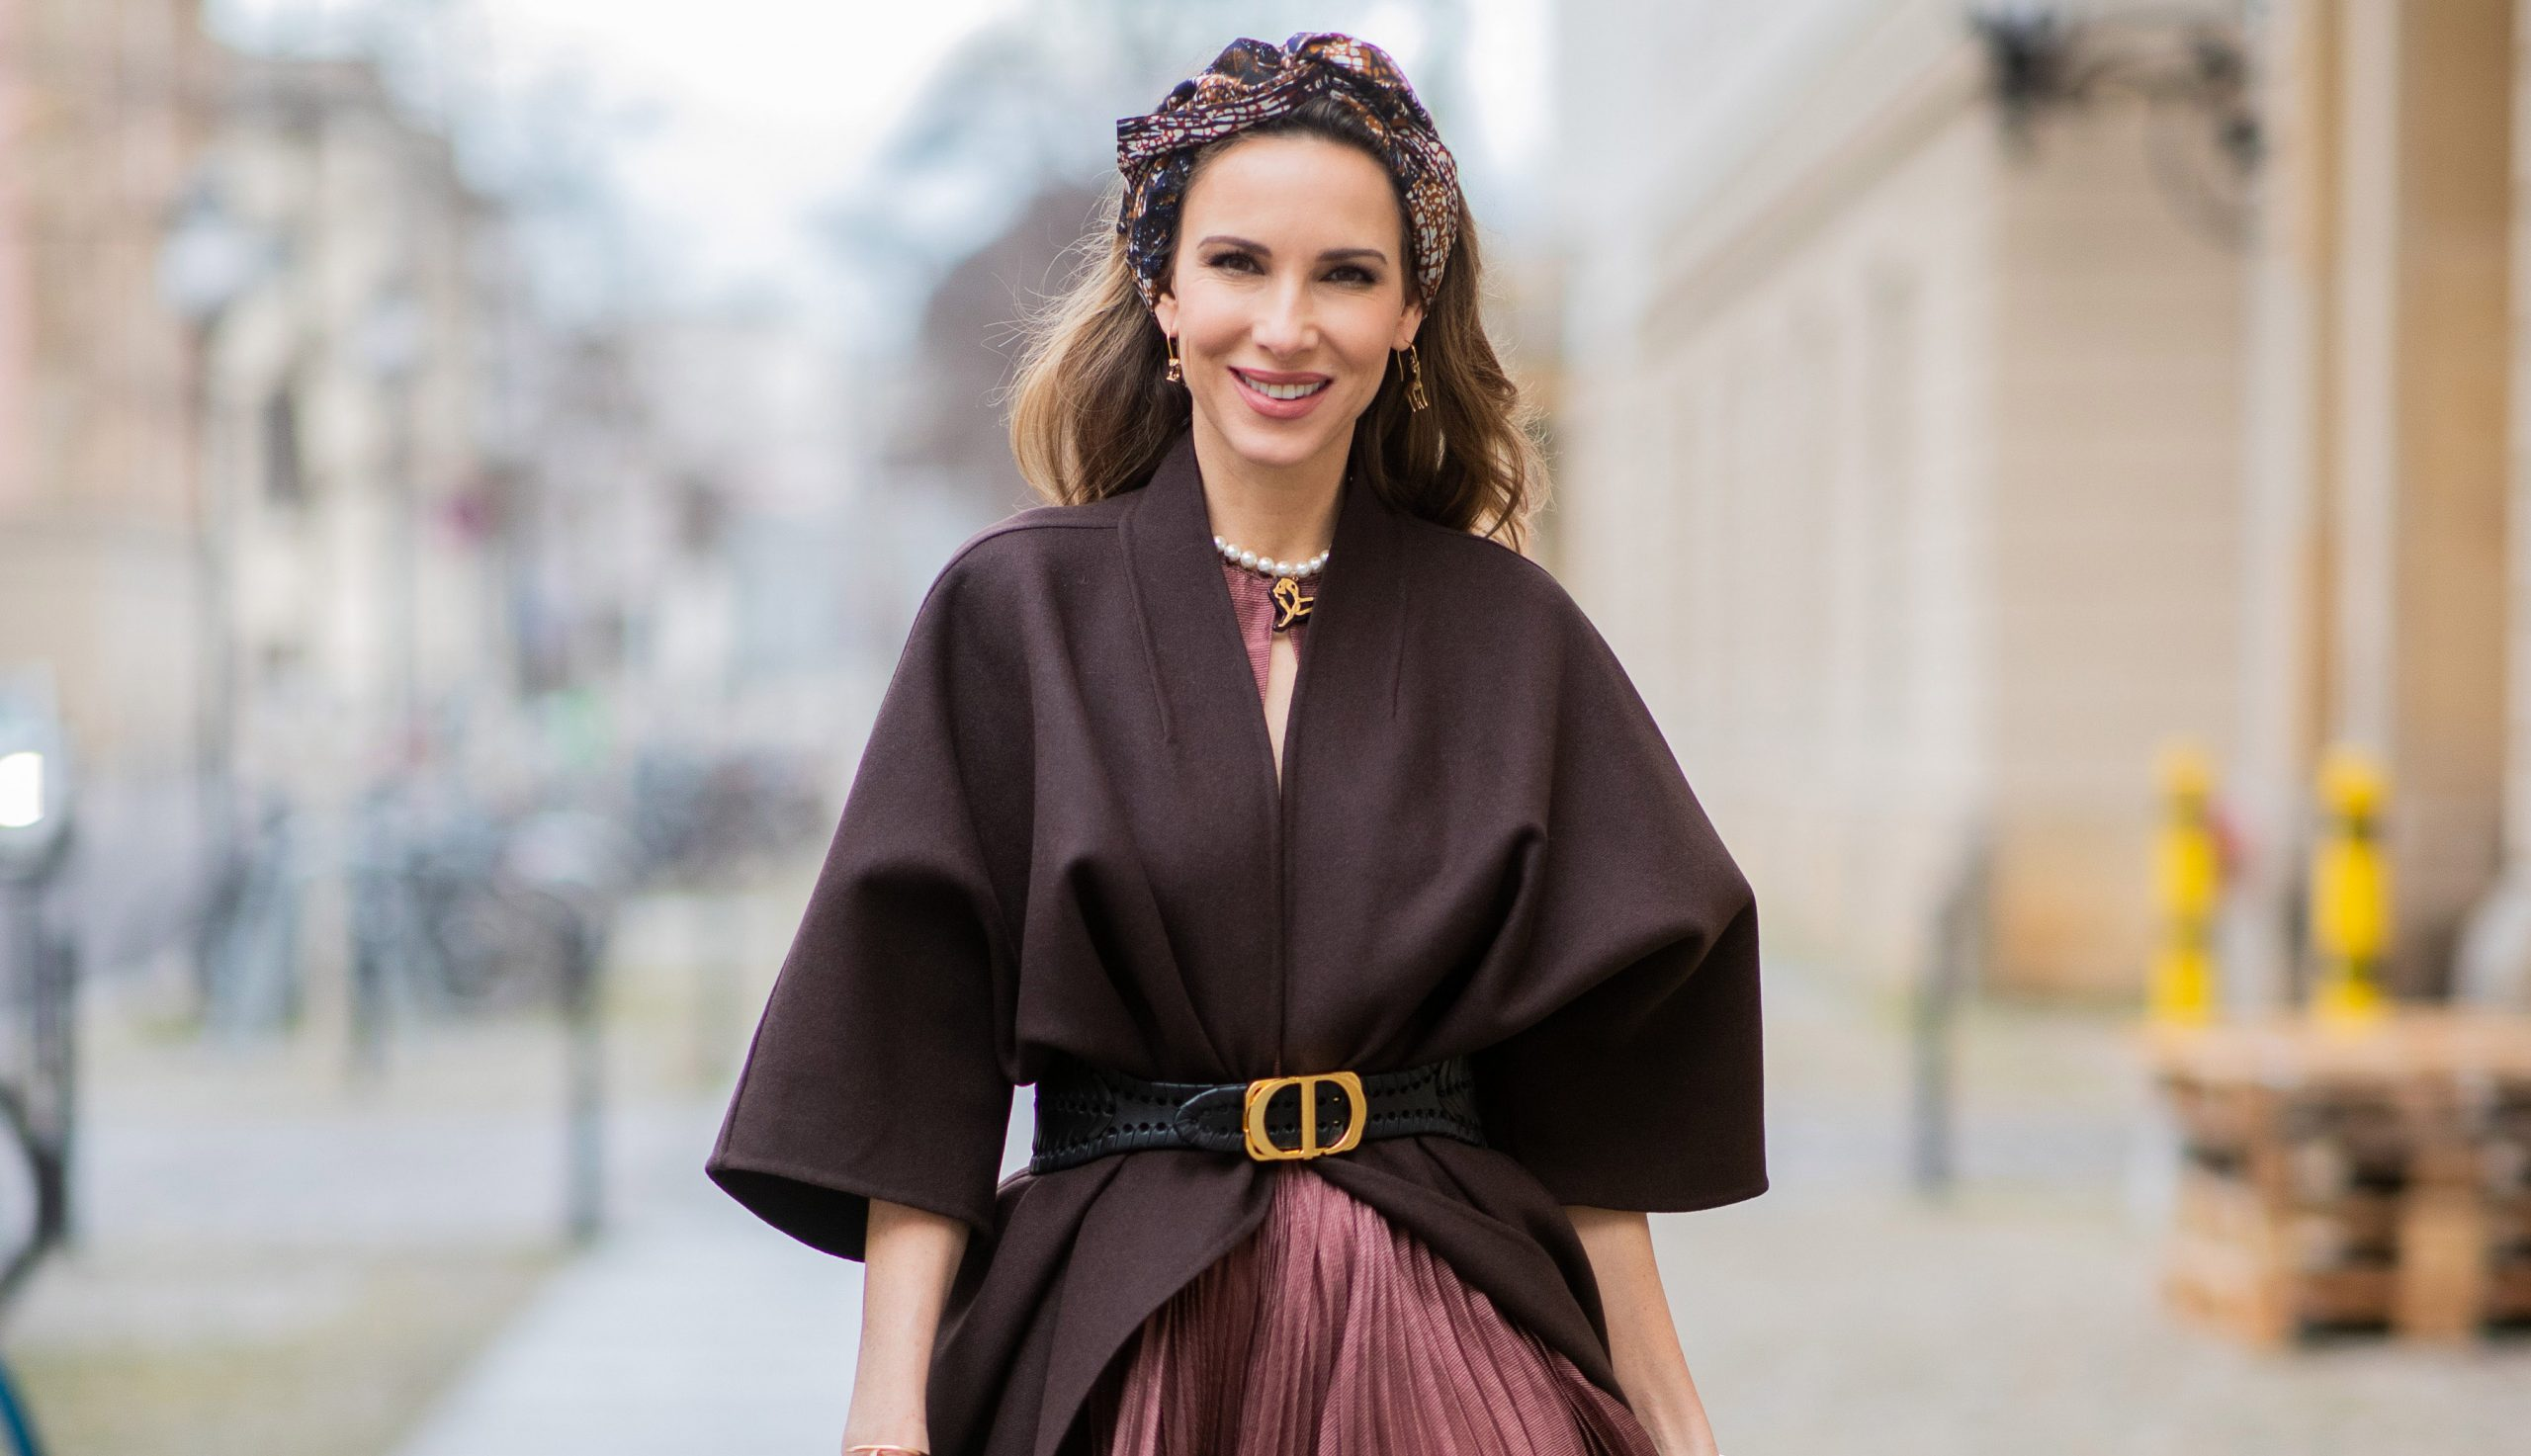 What To Wear To A Winter Wedding Outfit Ideas For Every Budget Woman Home